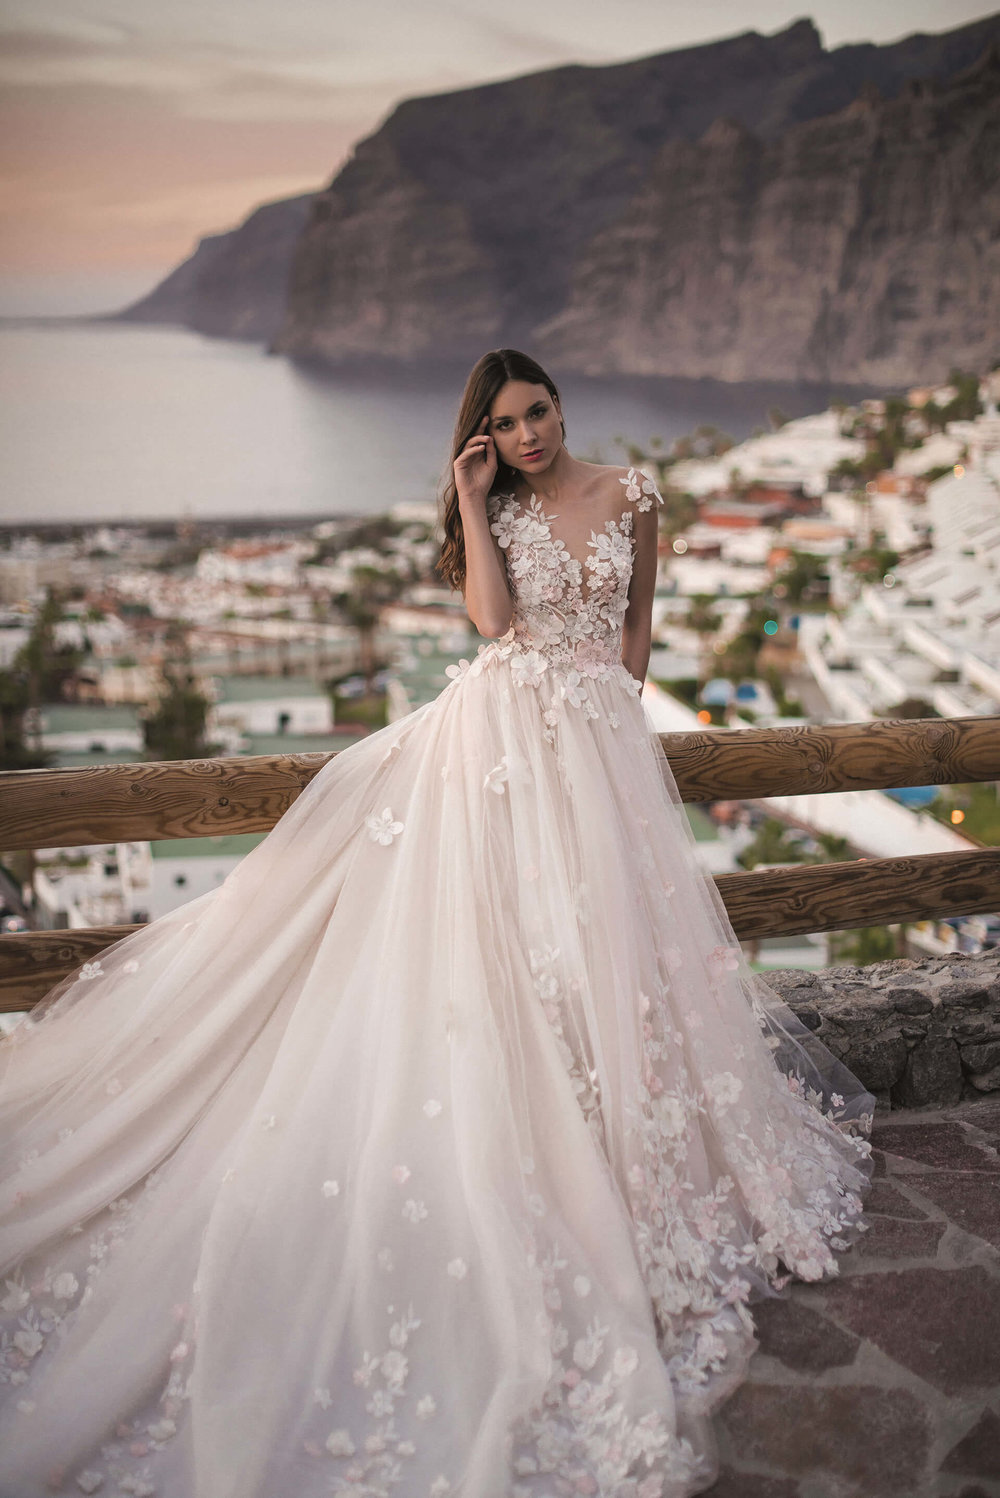 HEIDEN wedding dress by OKSANA MUKHA